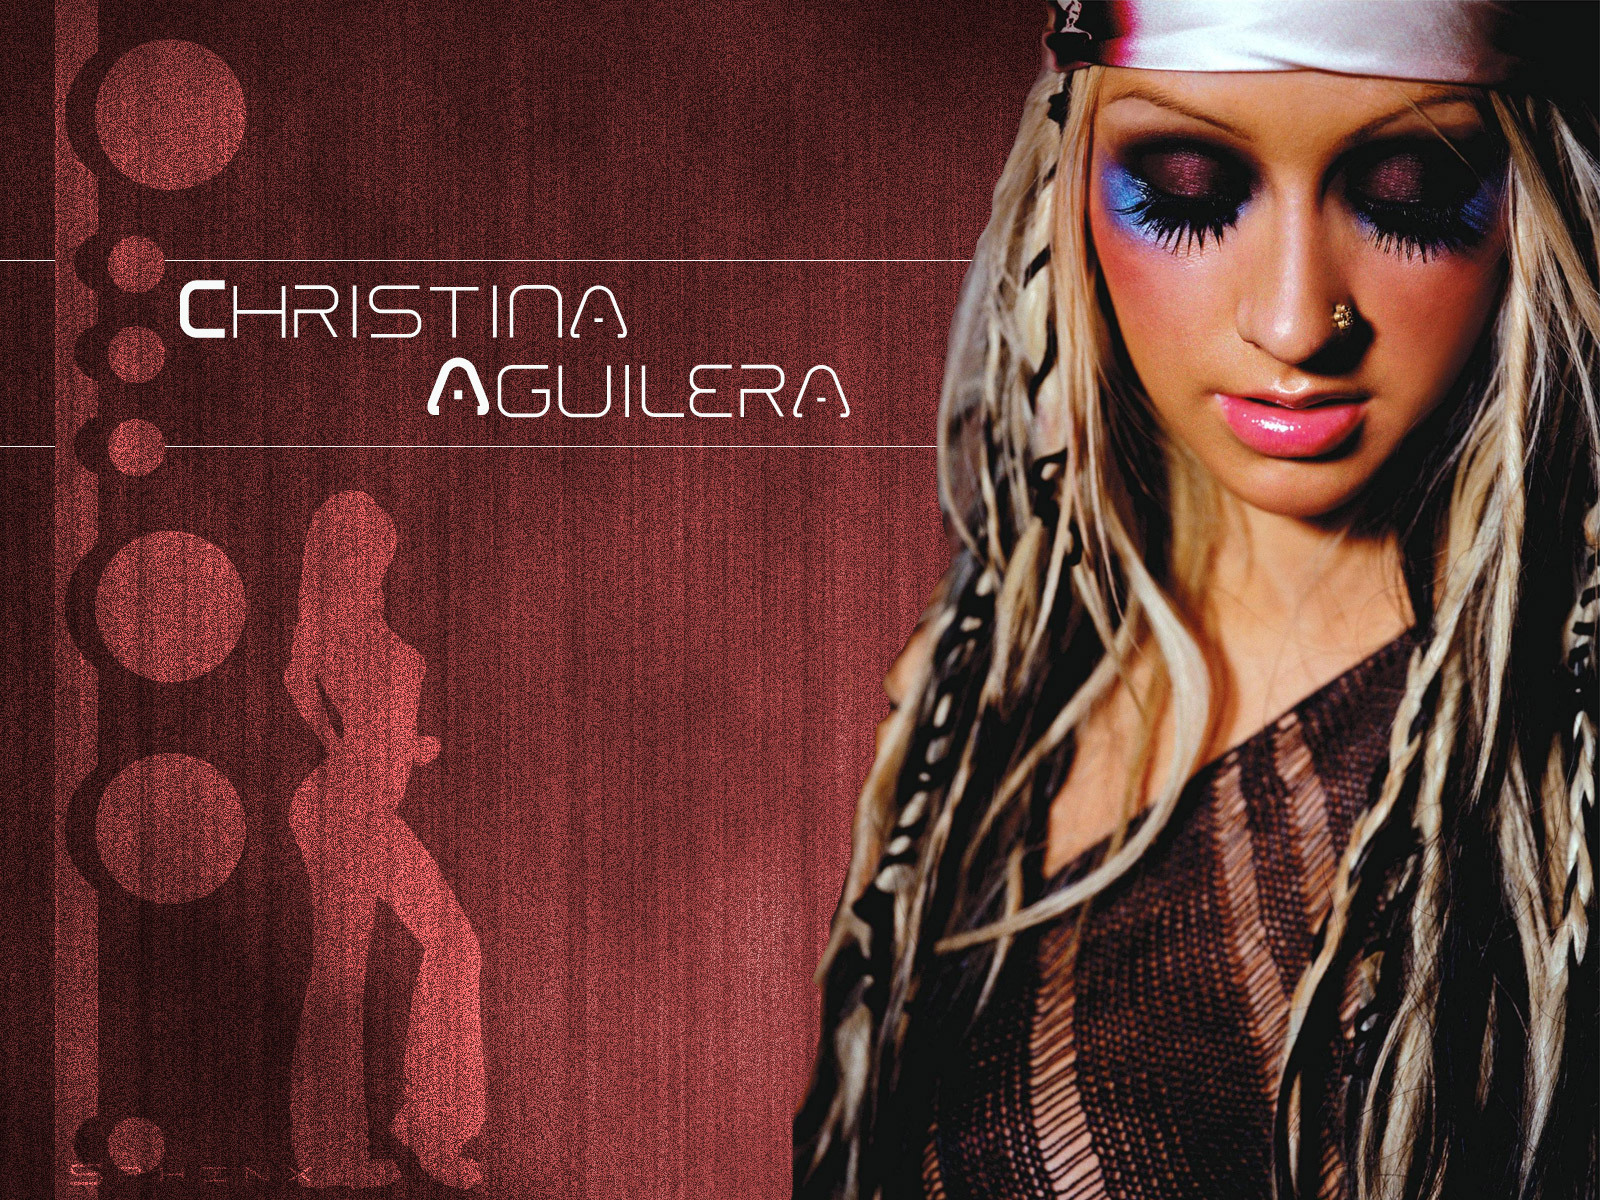 Image Result For Tina Wallpaper Stripped Images Xtina Old Wallpapers Hd Wallpaper And Background